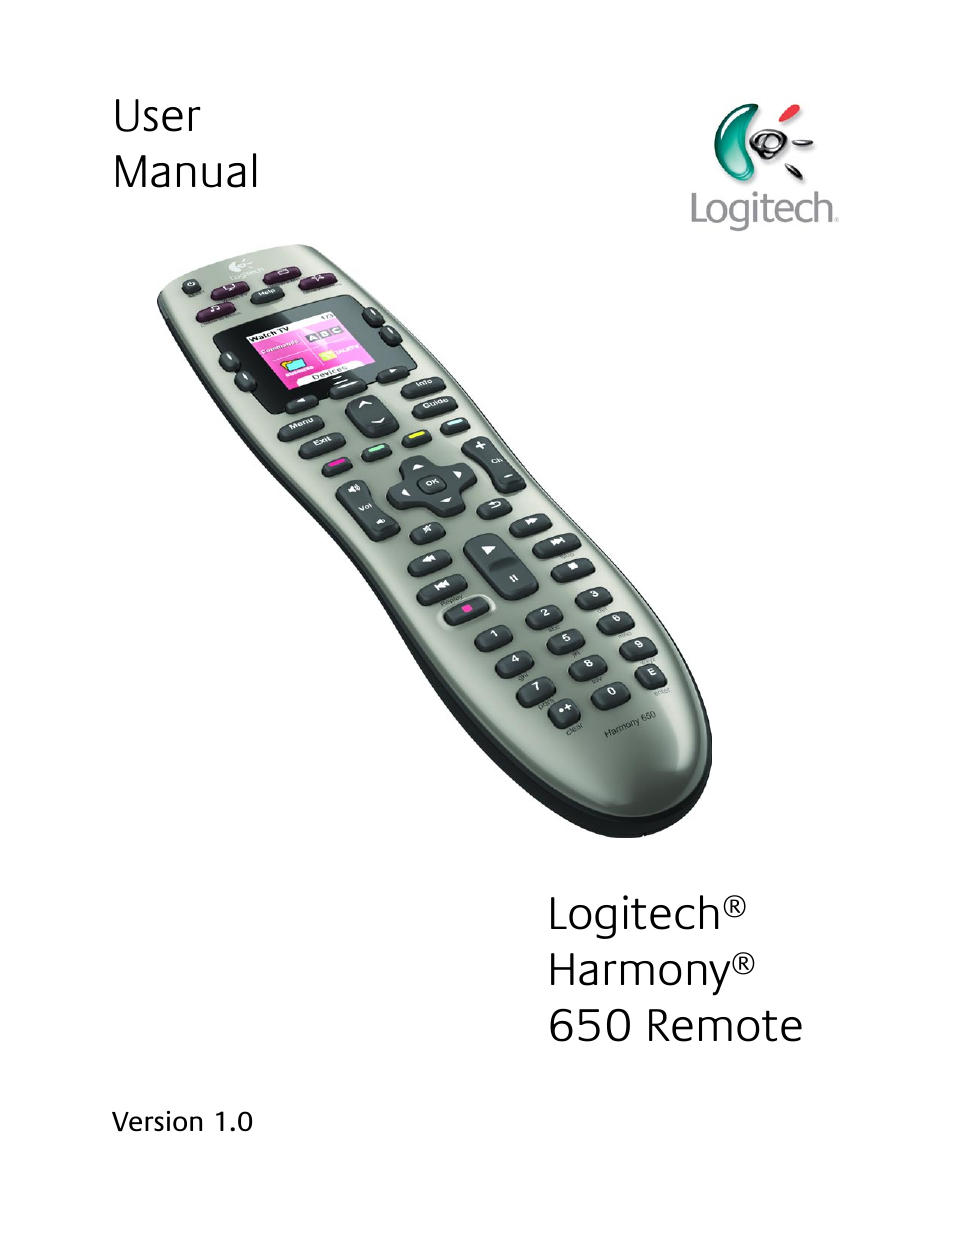 logitech harmony sd 3990 sc user manual 26 pages. Black Bedroom Furniture Sets. Home Design Ideas